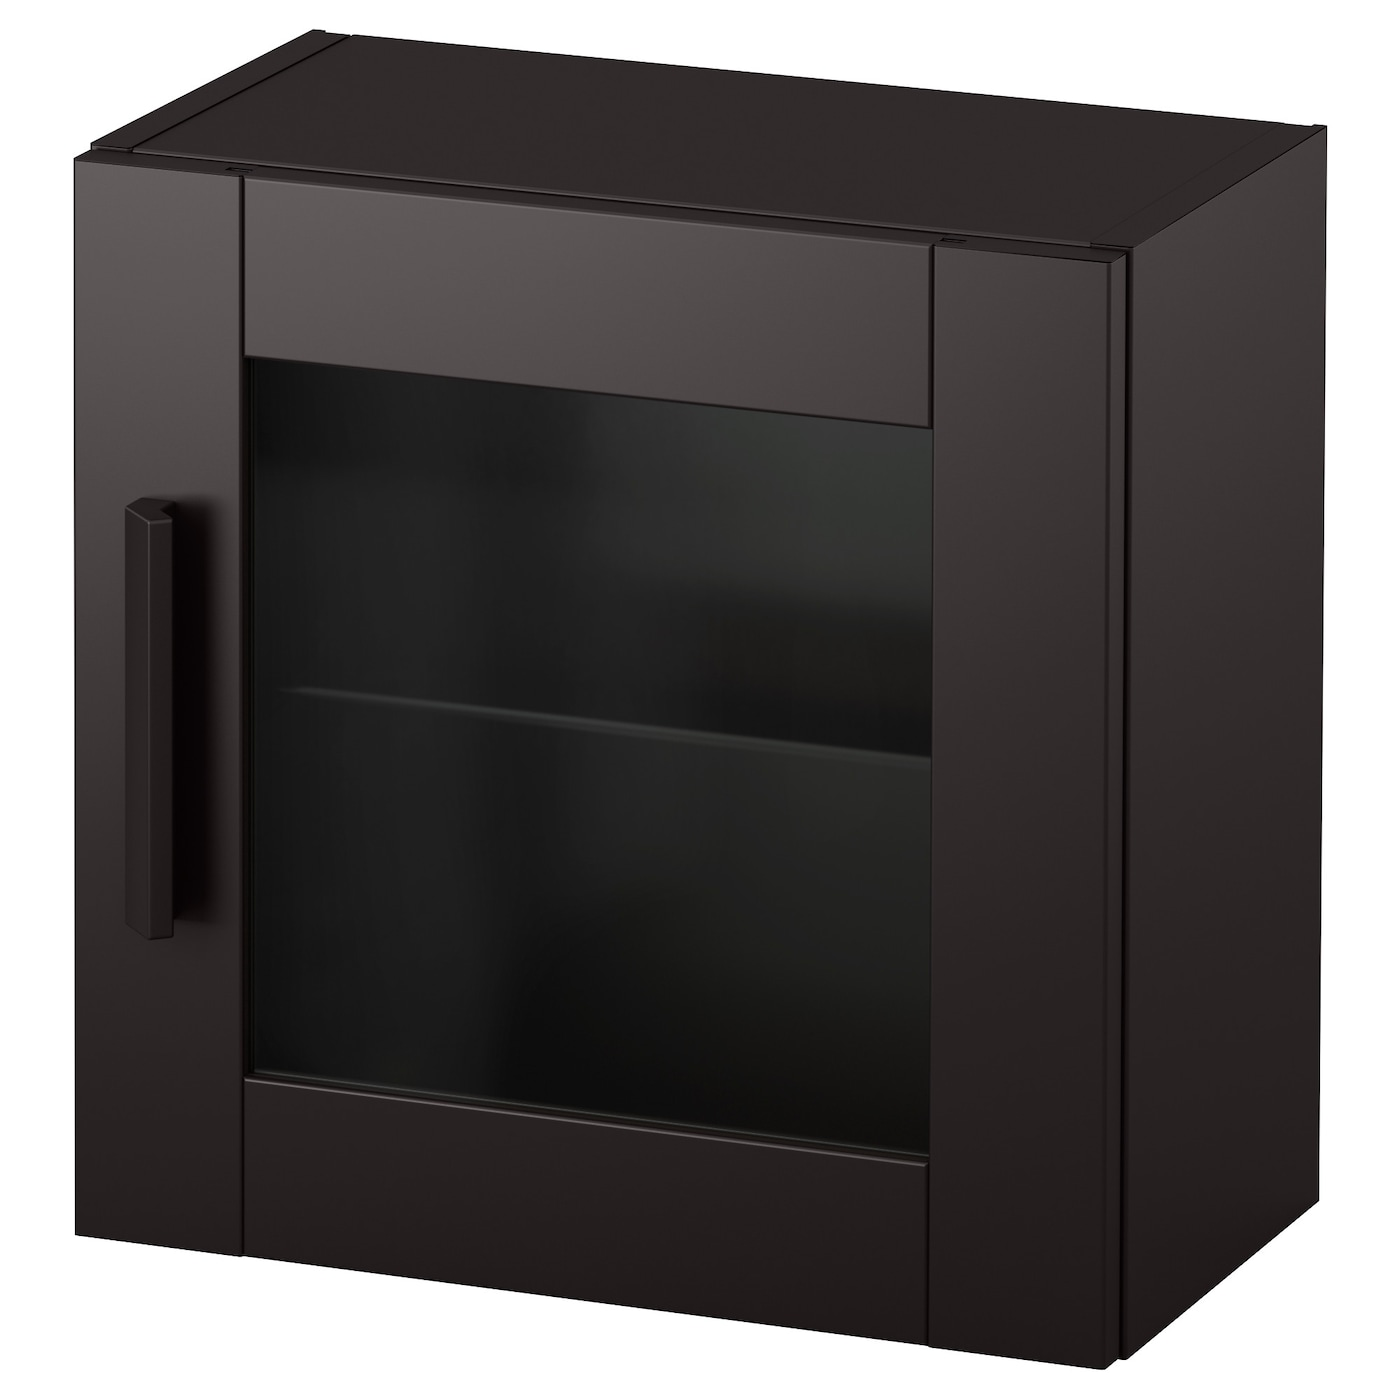 brimnes wall cabinet with glass door black 39x39 cm ikea. Black Bedroom Furniture Sets. Home Design Ideas